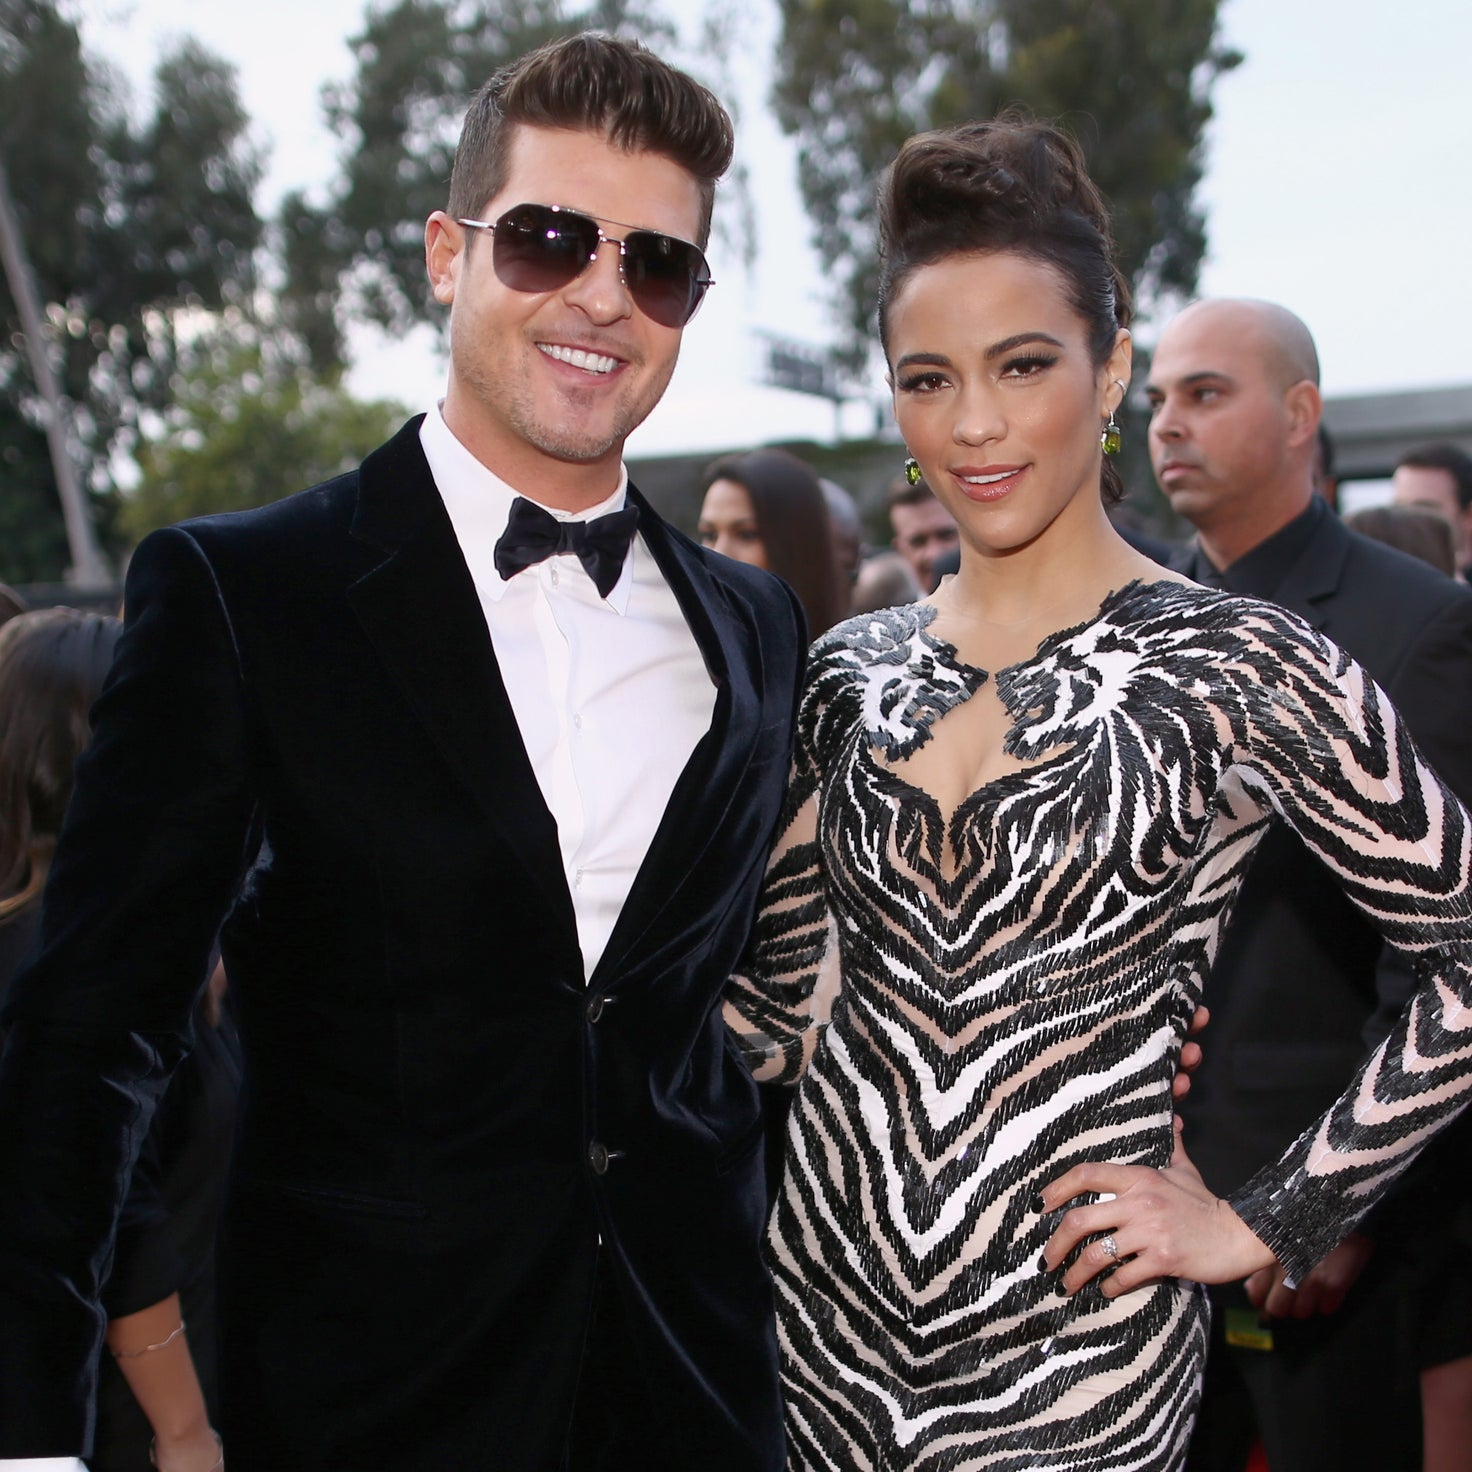 Paula Patton Accuses Robin Thicke of Abusively Spanking Their Son, Judge Denies Her Request to Limit Custody